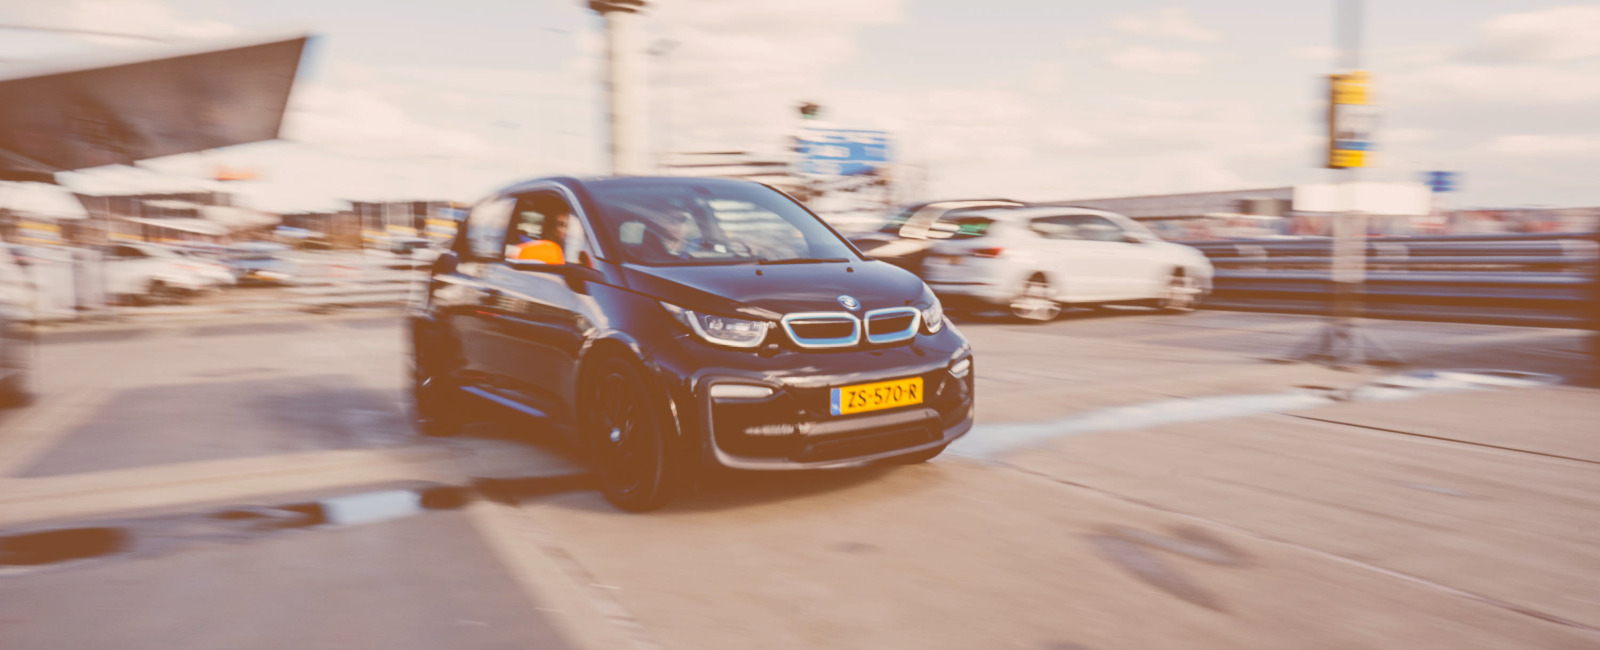 sixt share carsharing luchthaven schiphol amsterdam 2